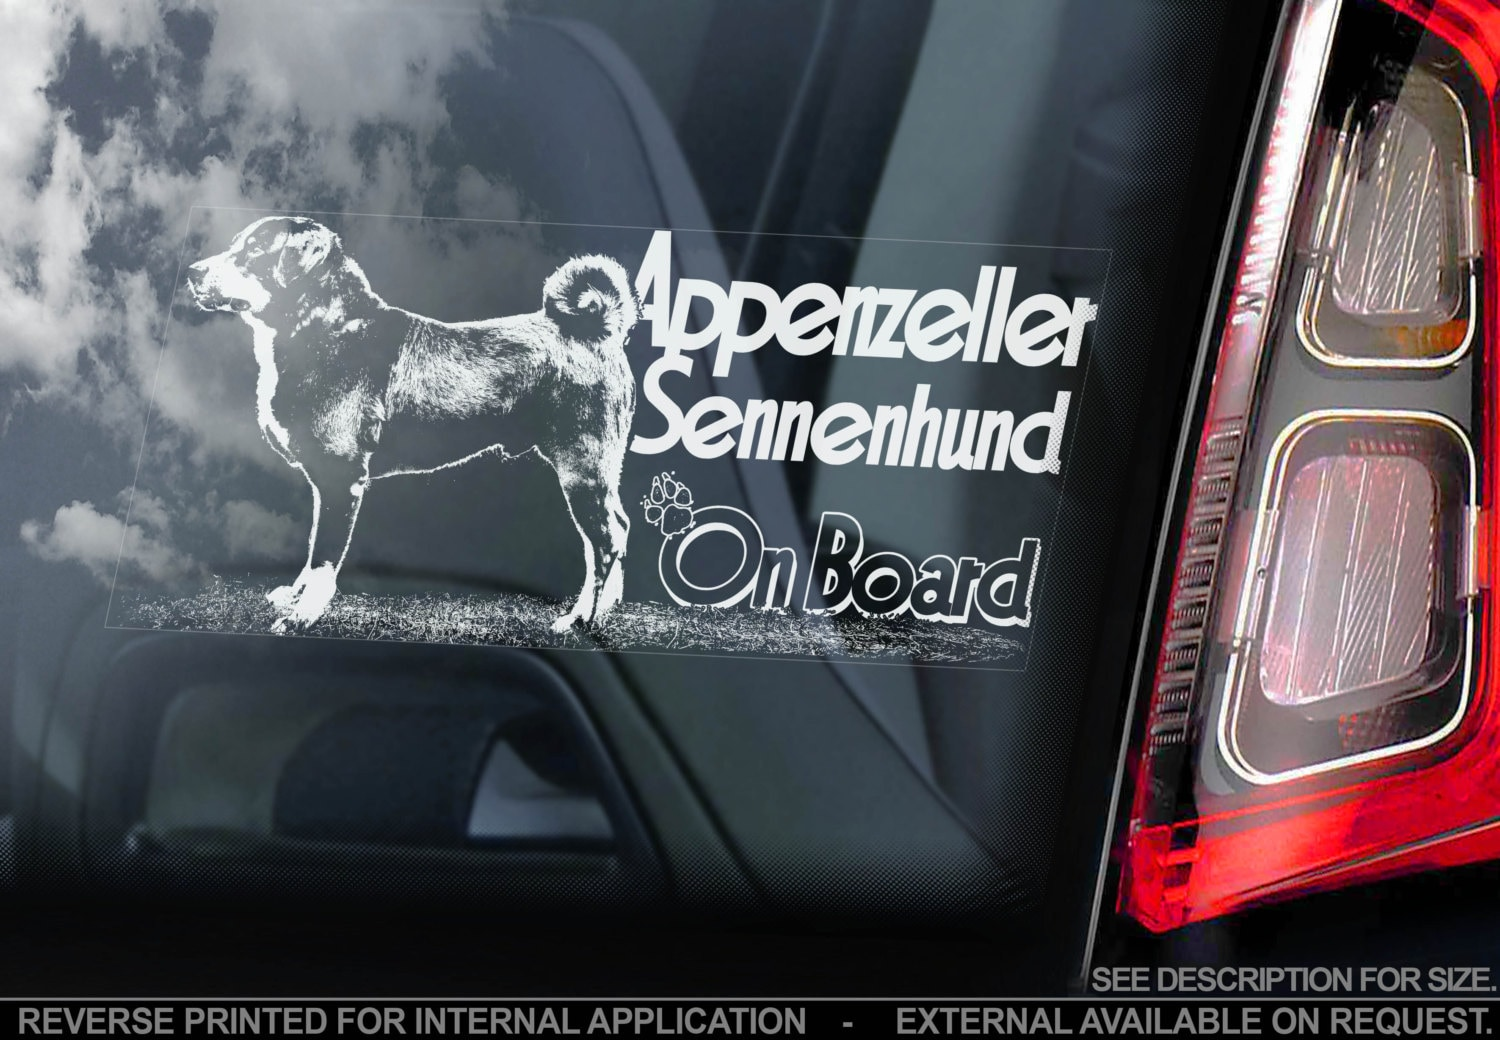 Appenzeller Sennenhund On Board Car Window Sticker